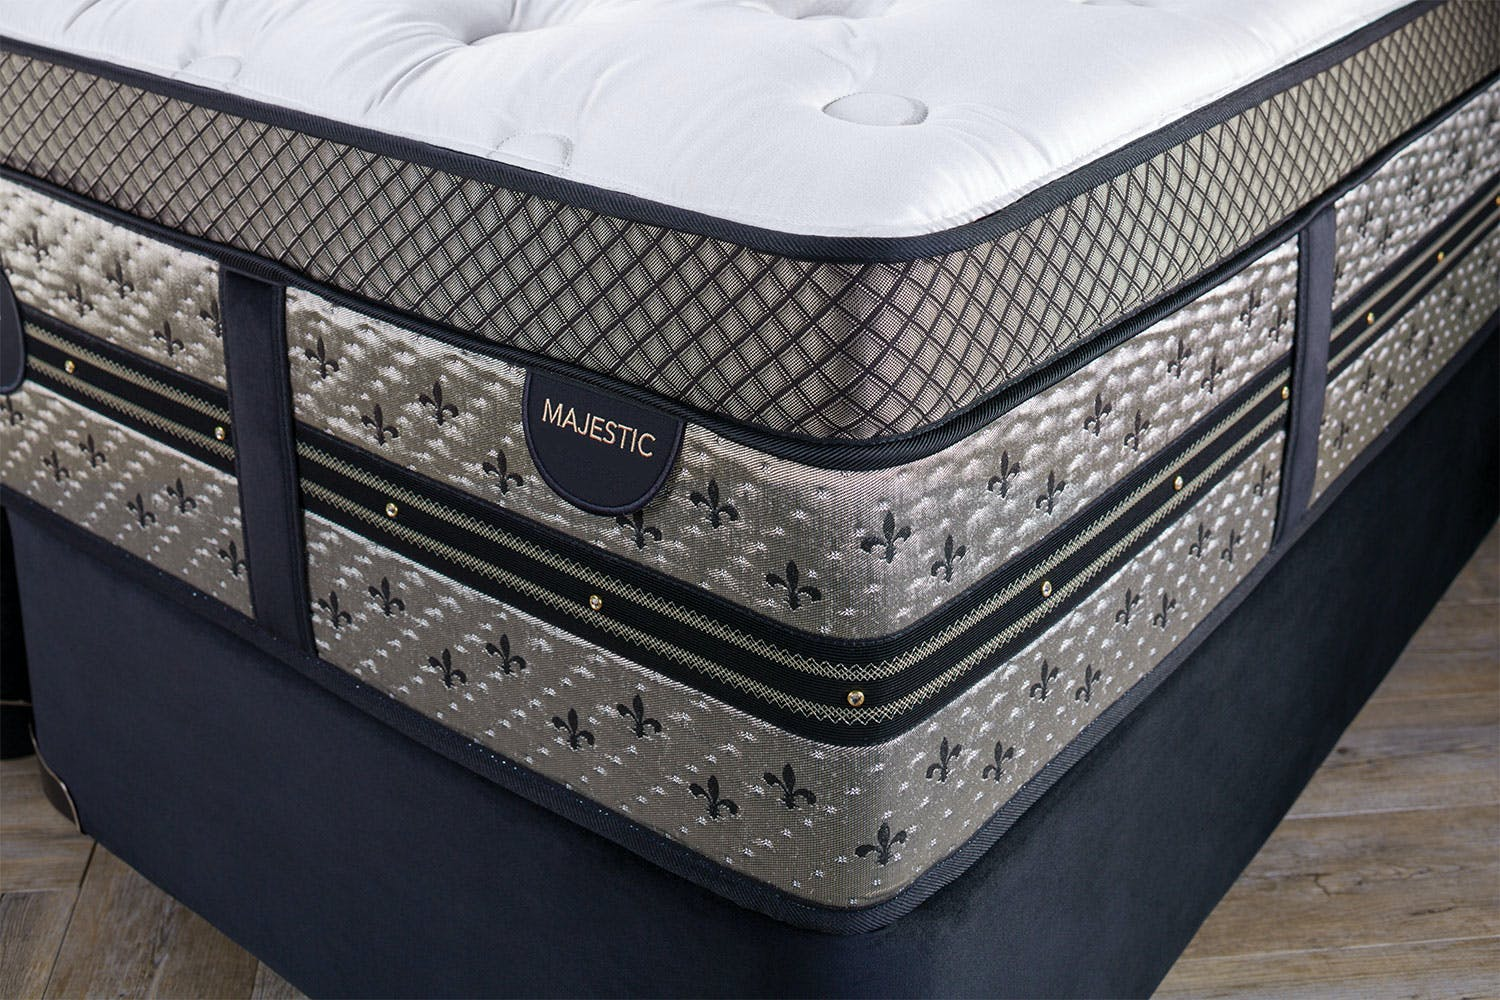 Majestic Firm Californian King Bed by Beautyrest Black